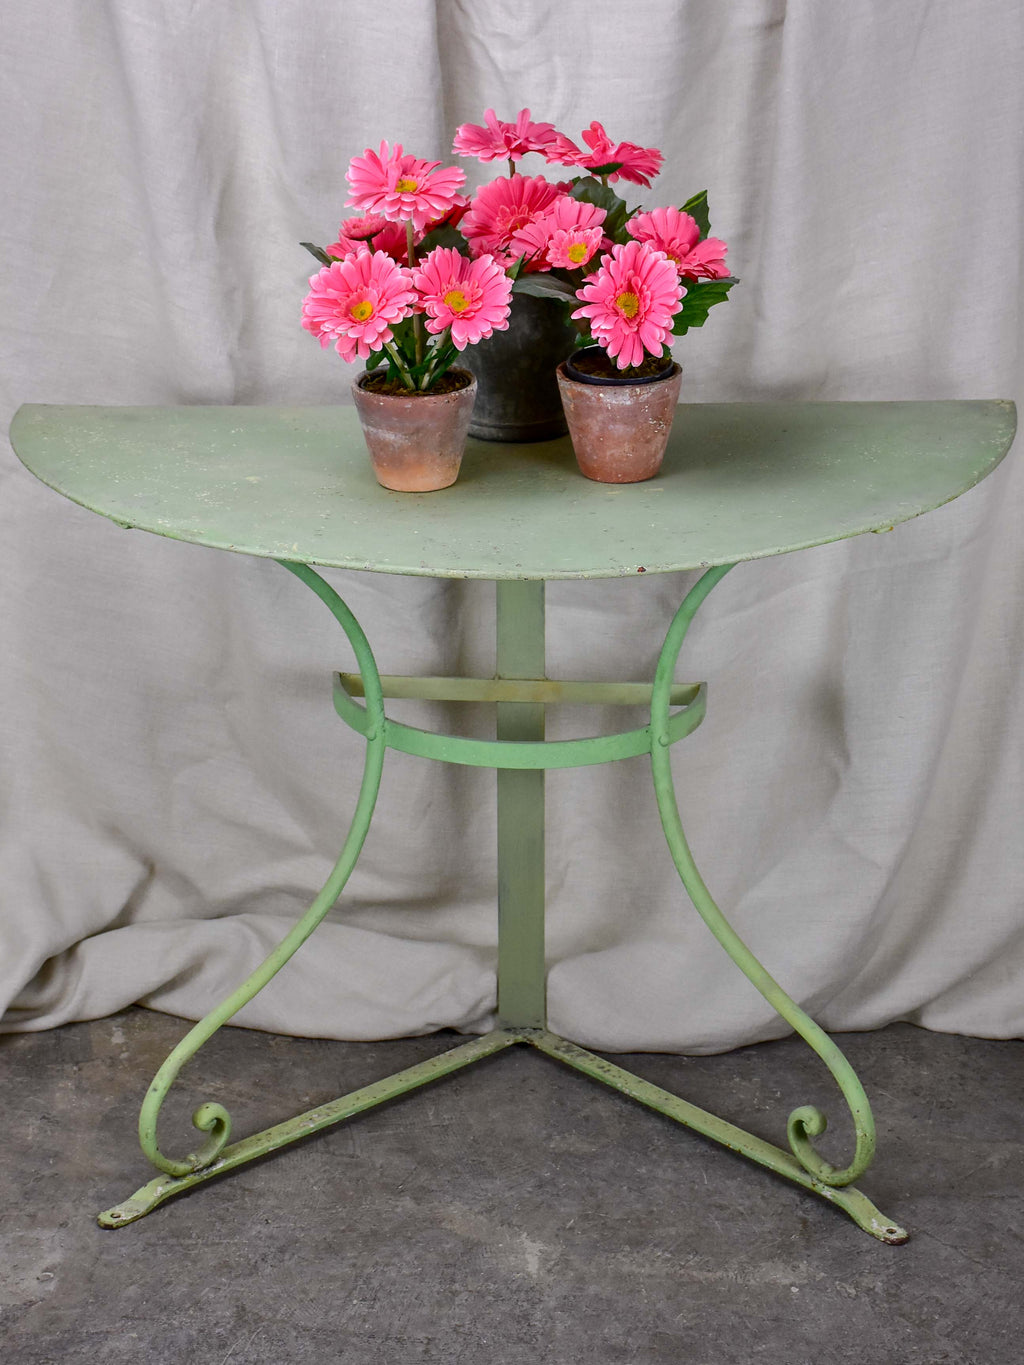 Pair of antique French half-moon garden tables